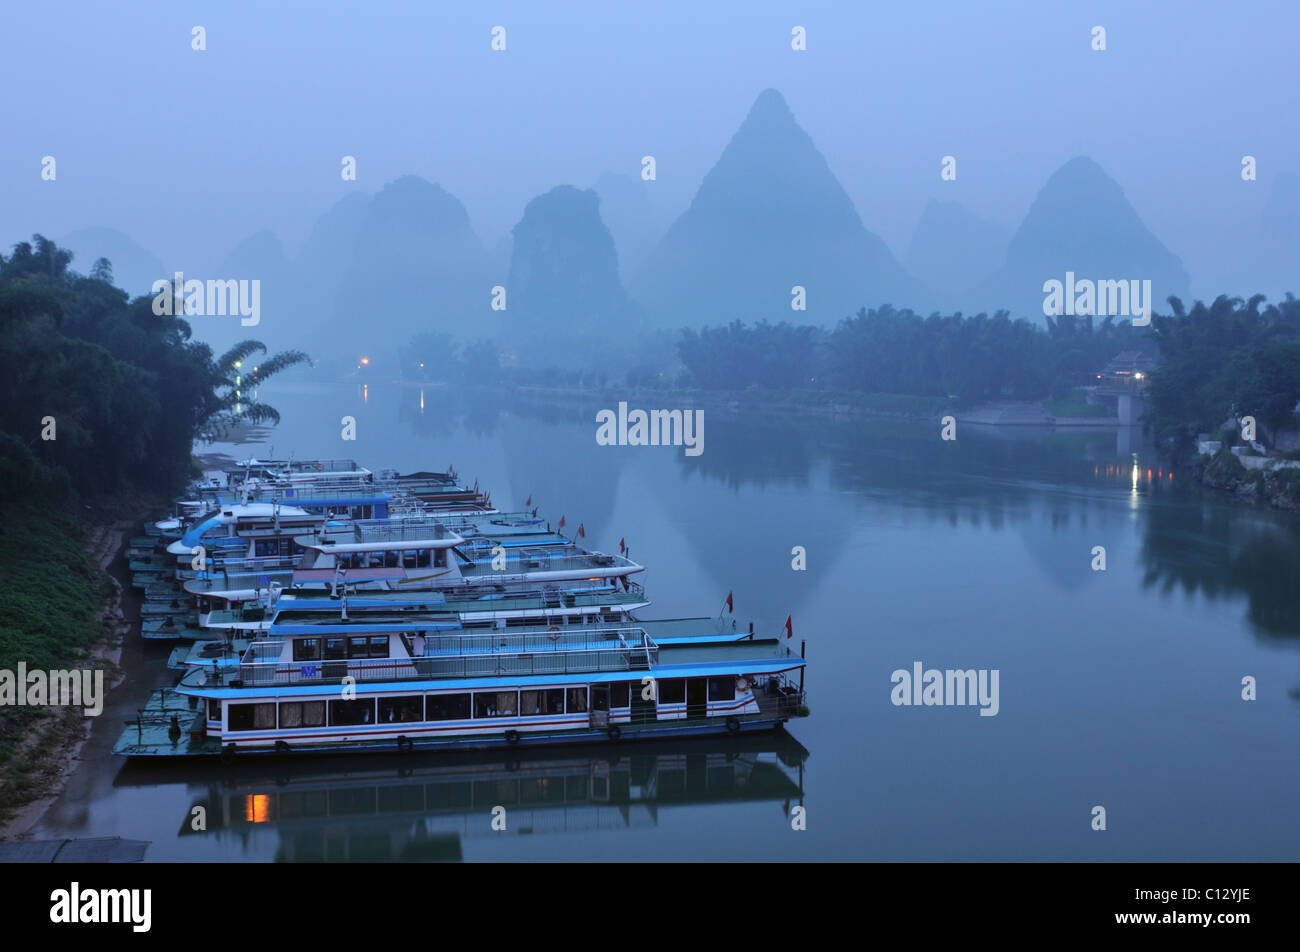 ships on Li River at Yangshuo in Guilin region of China - Stock Image